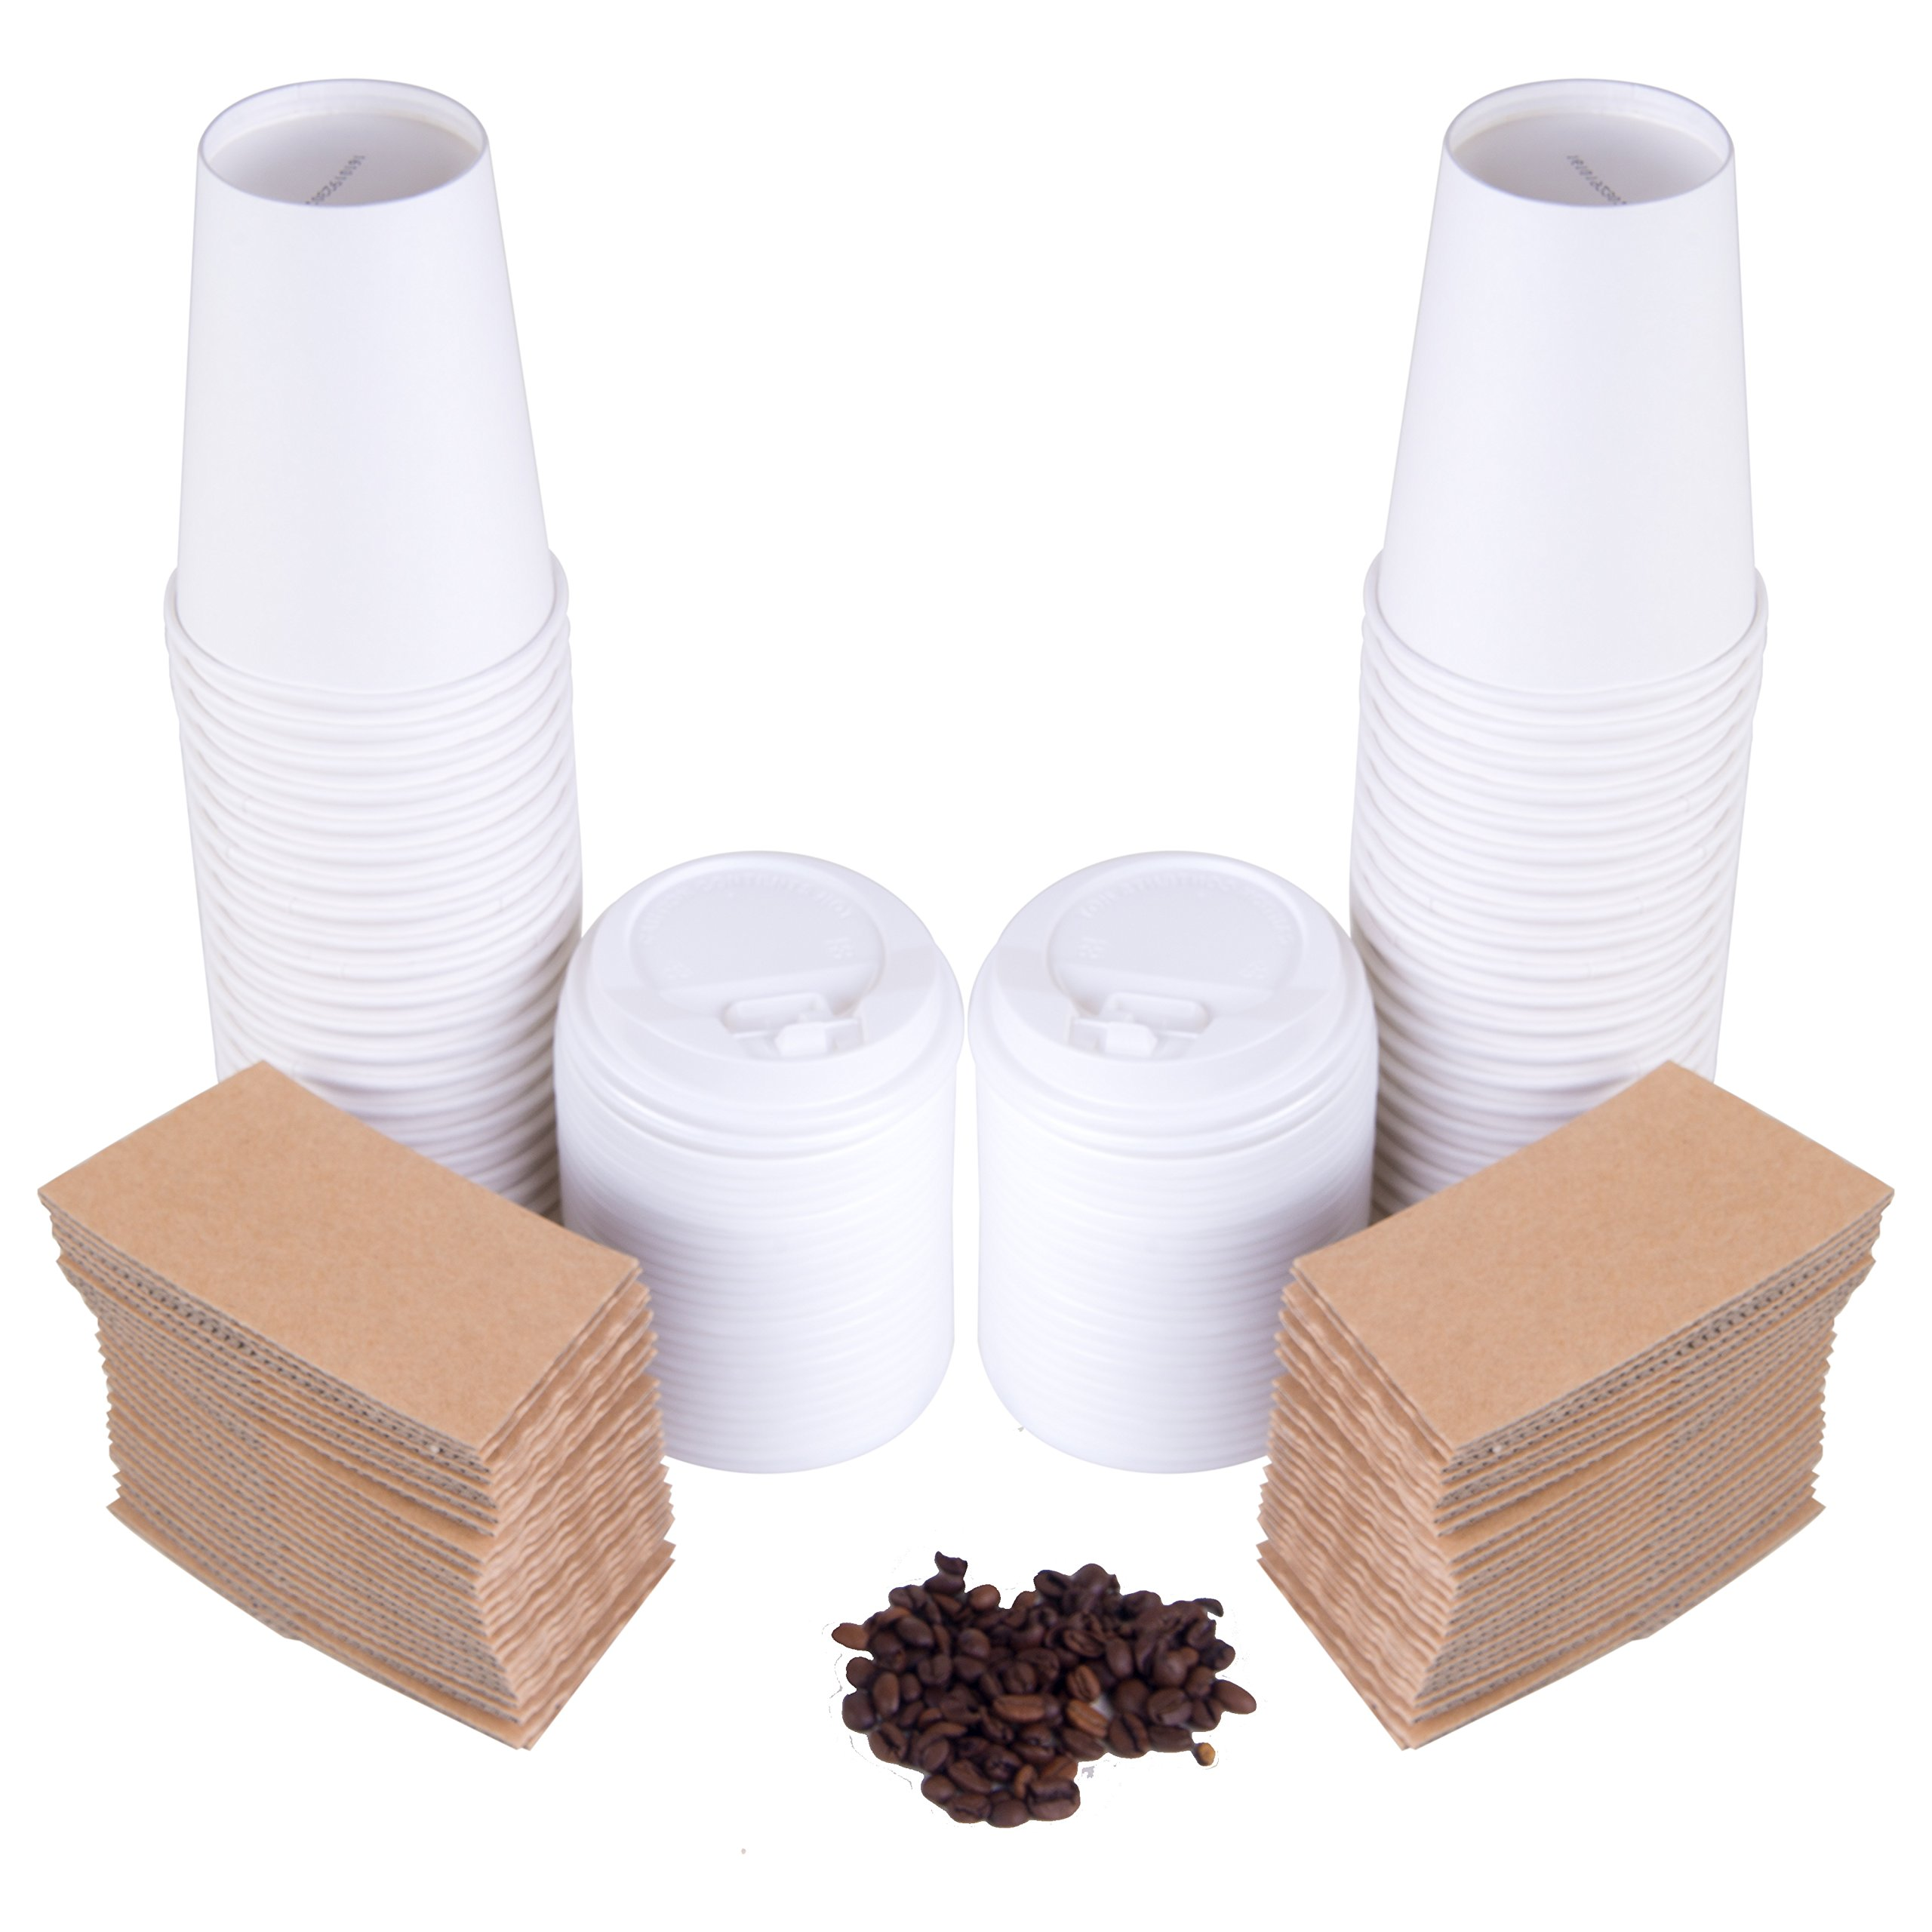 Disposable Coffee Cups Pack Of 50 Protective, Insulating Sleeves - Secure Cappuccino Lids - 12oz Capacity - For Travels, Parties & Bars.